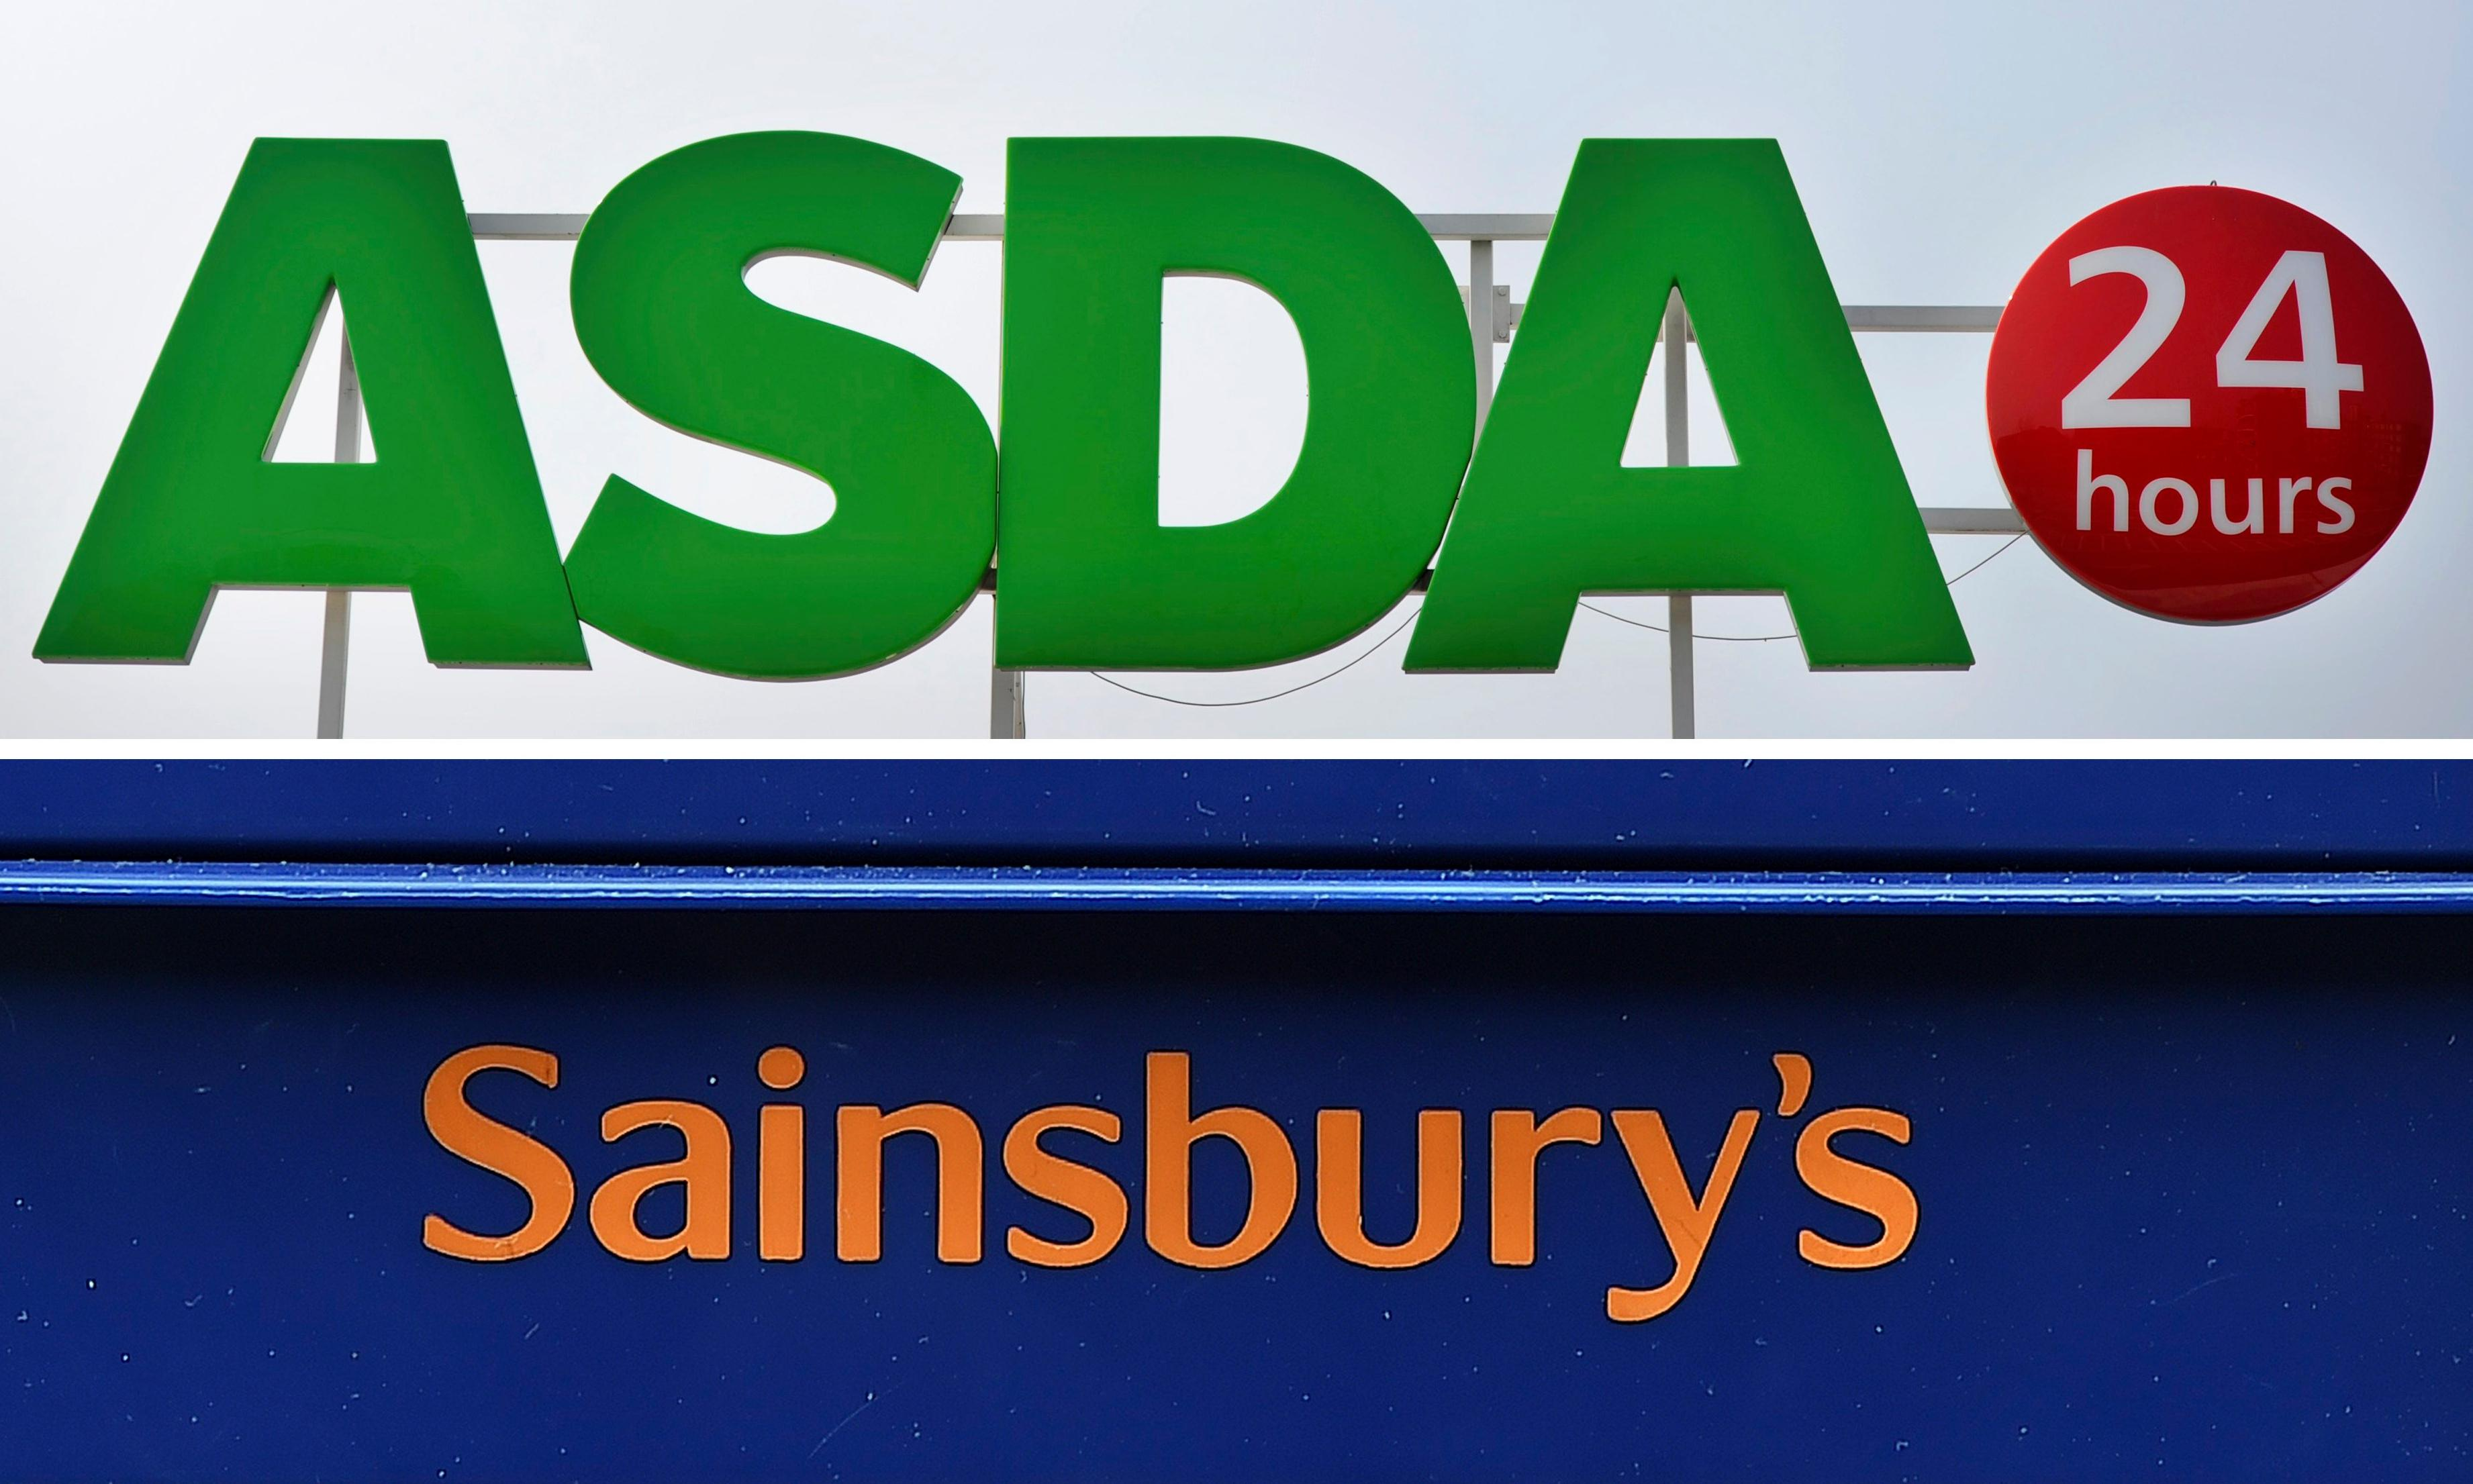 Sainsbury's-Asda merger in doubt over 'extensive competition concerns'